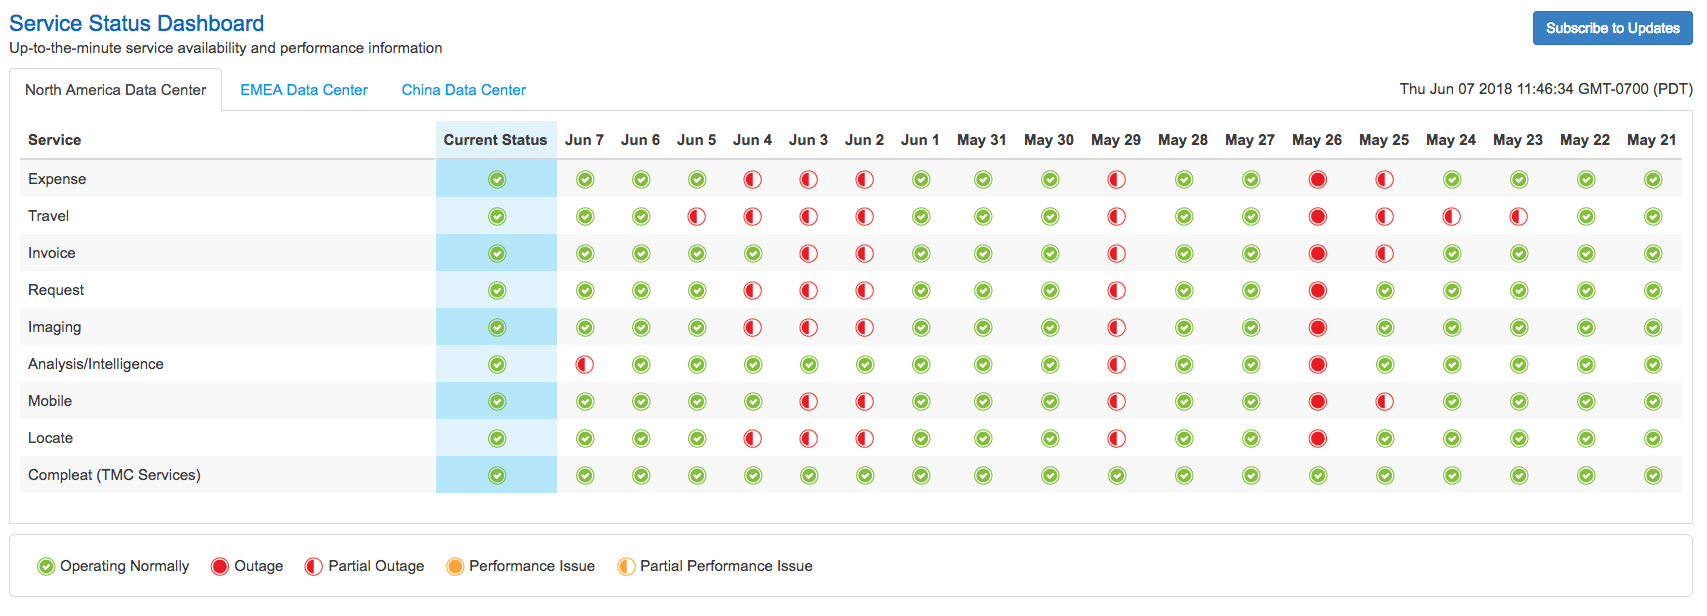 Our competitor service status dashboard